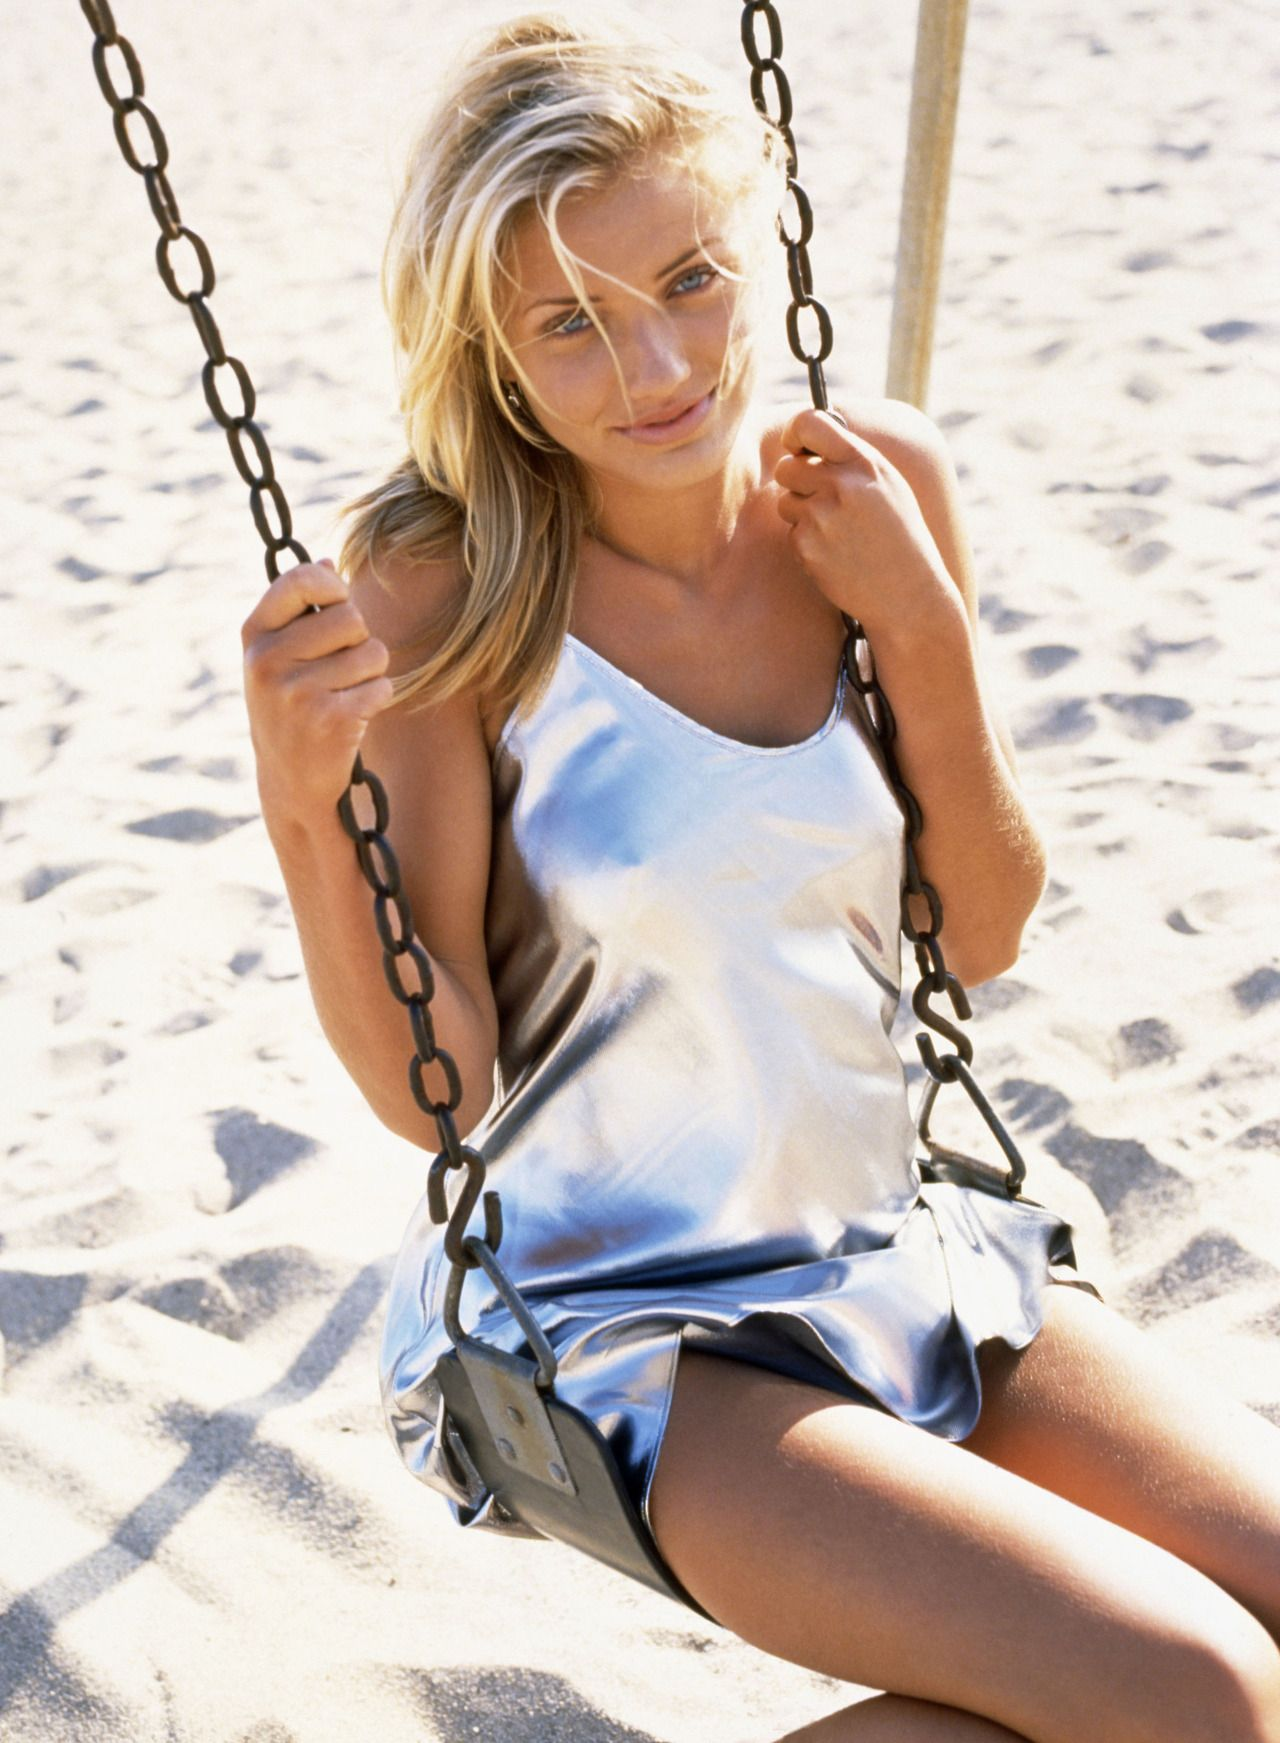 Goes! Cameron diaz young model remarkable, very